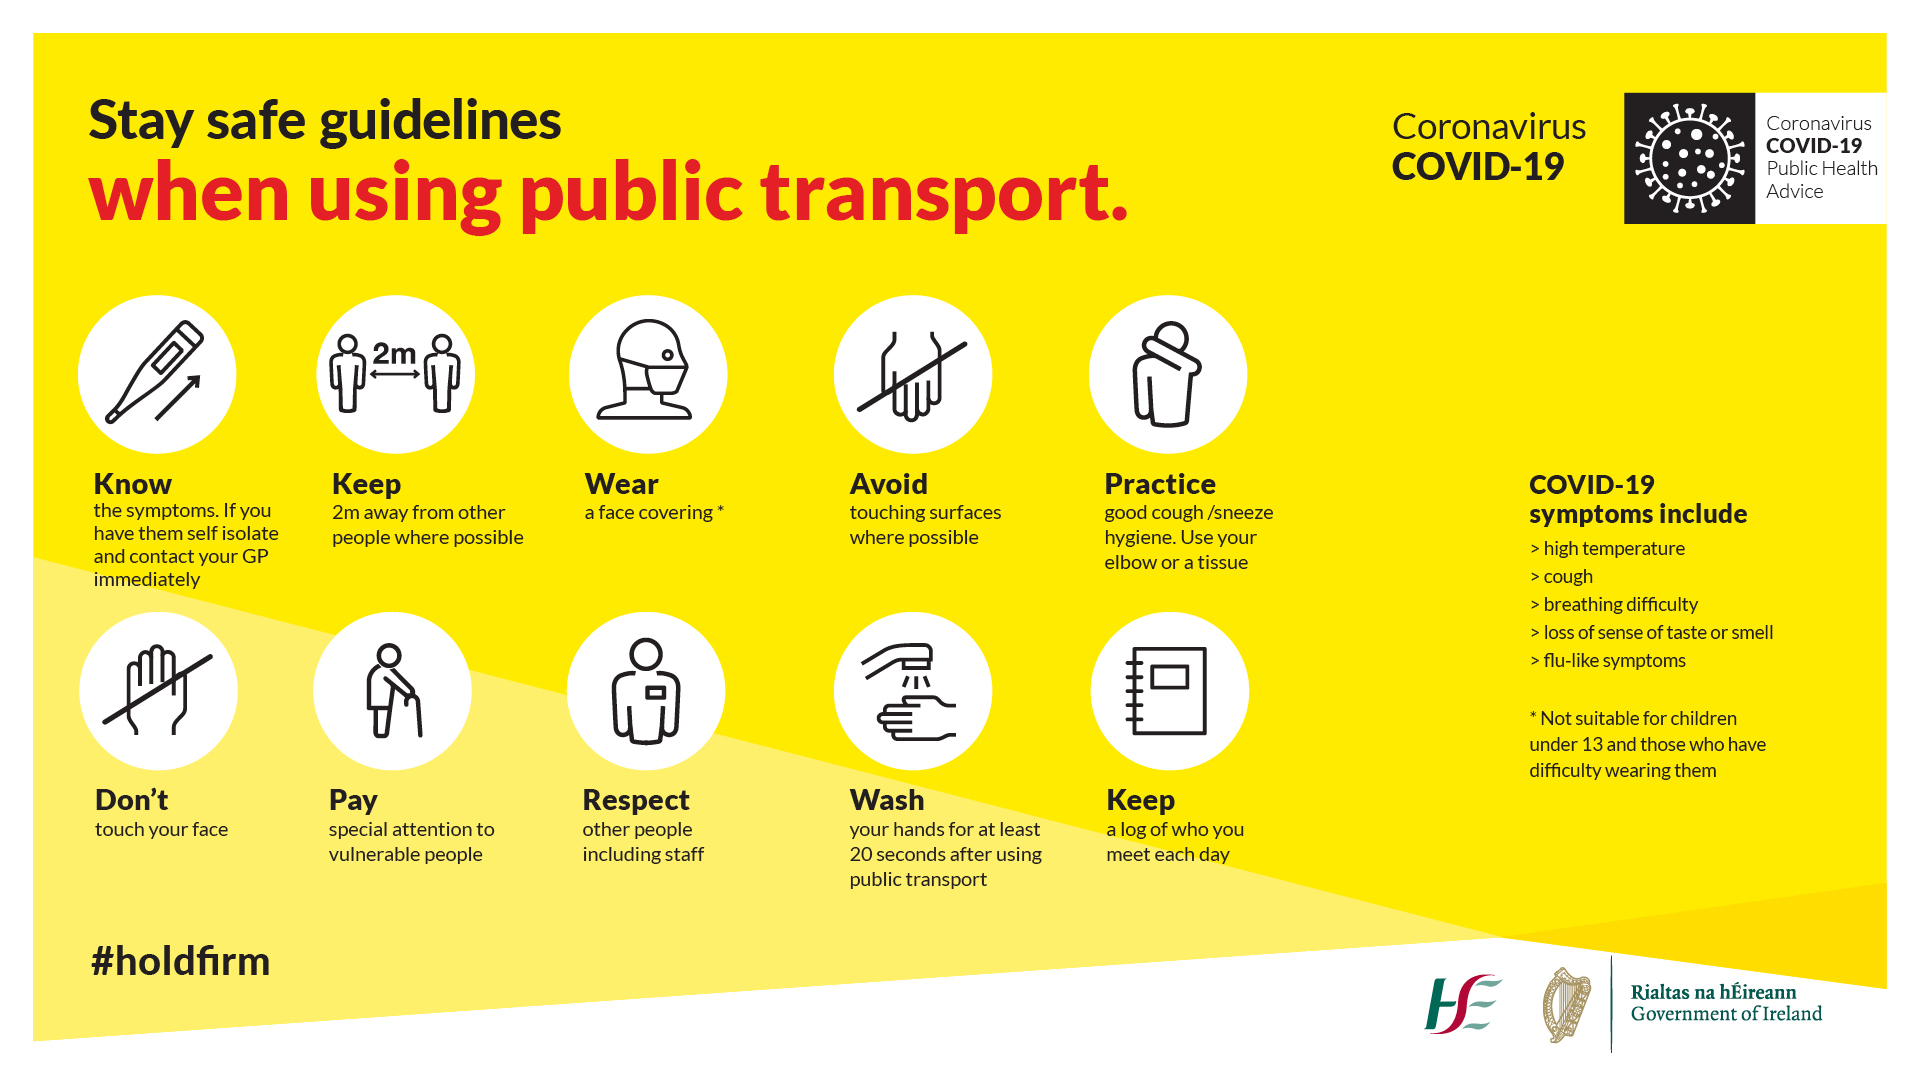 COVID-19 Guidelines for Public Transport